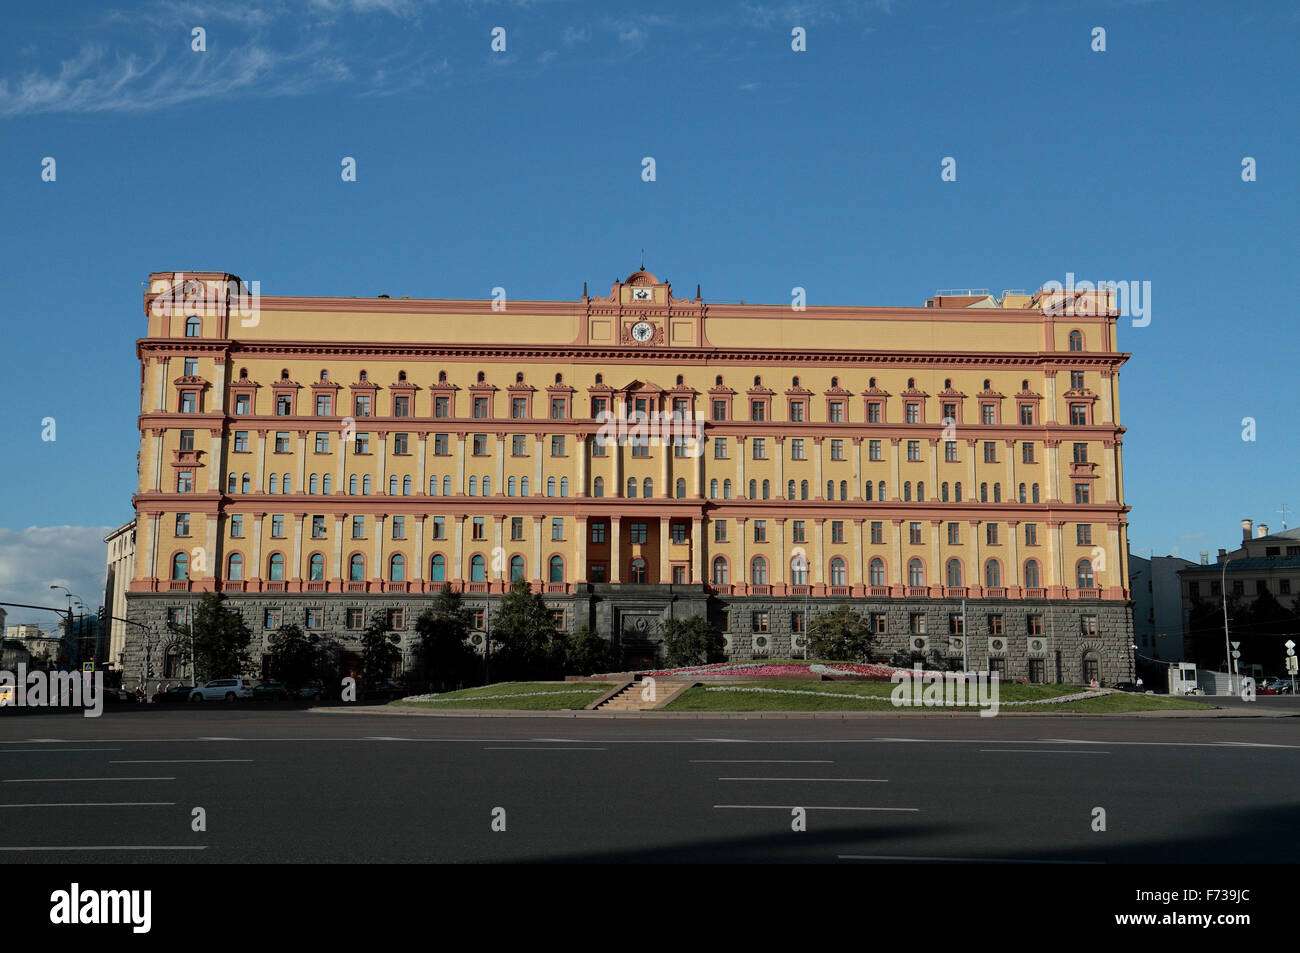 The former Lubyanka Prison and now the FSB HQ, Moscow, Russia. - Stock Image